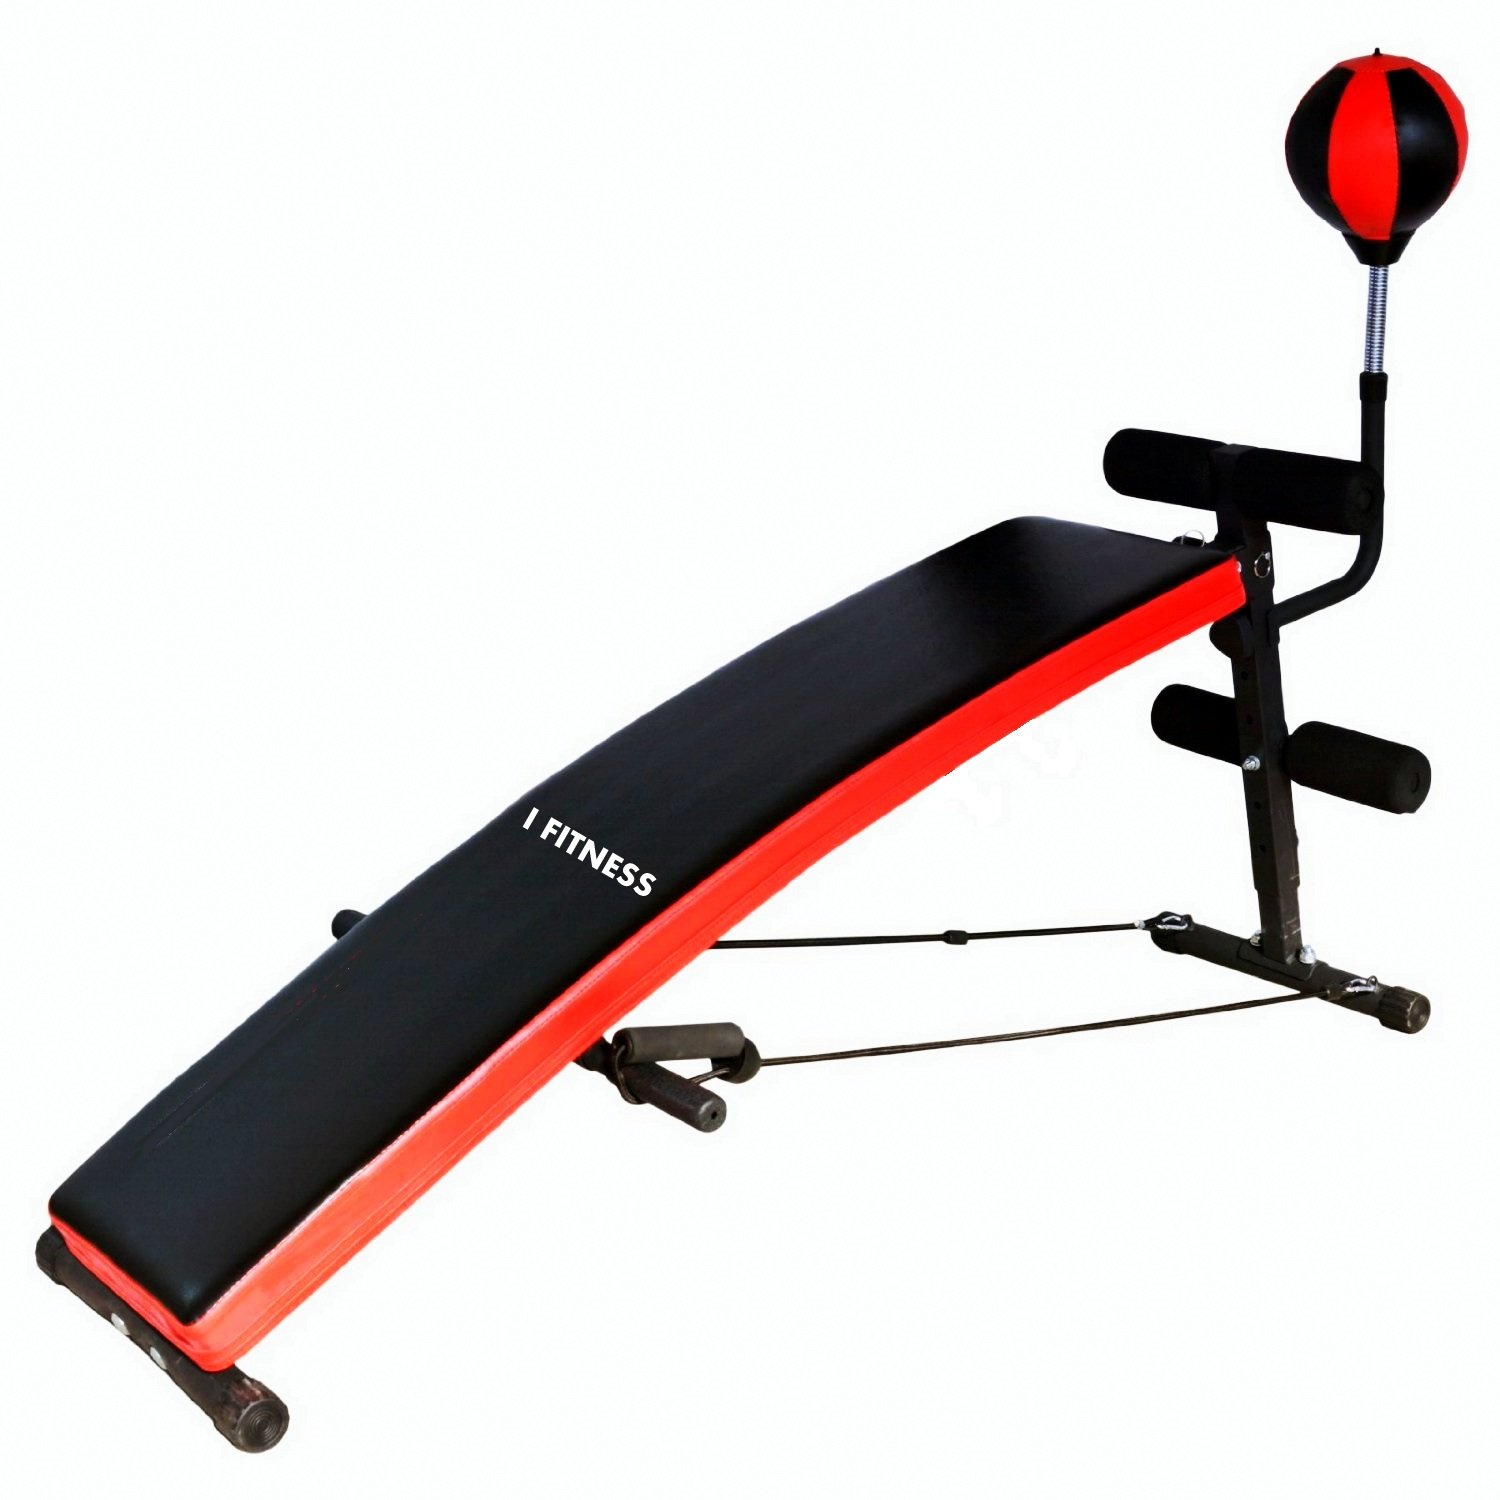 Iron Jack Curved Sit up Adjustable Heavy Duty Decline Bench for Abs & Core workout with Punching Bag and Resistance Latex Straps I Fitness